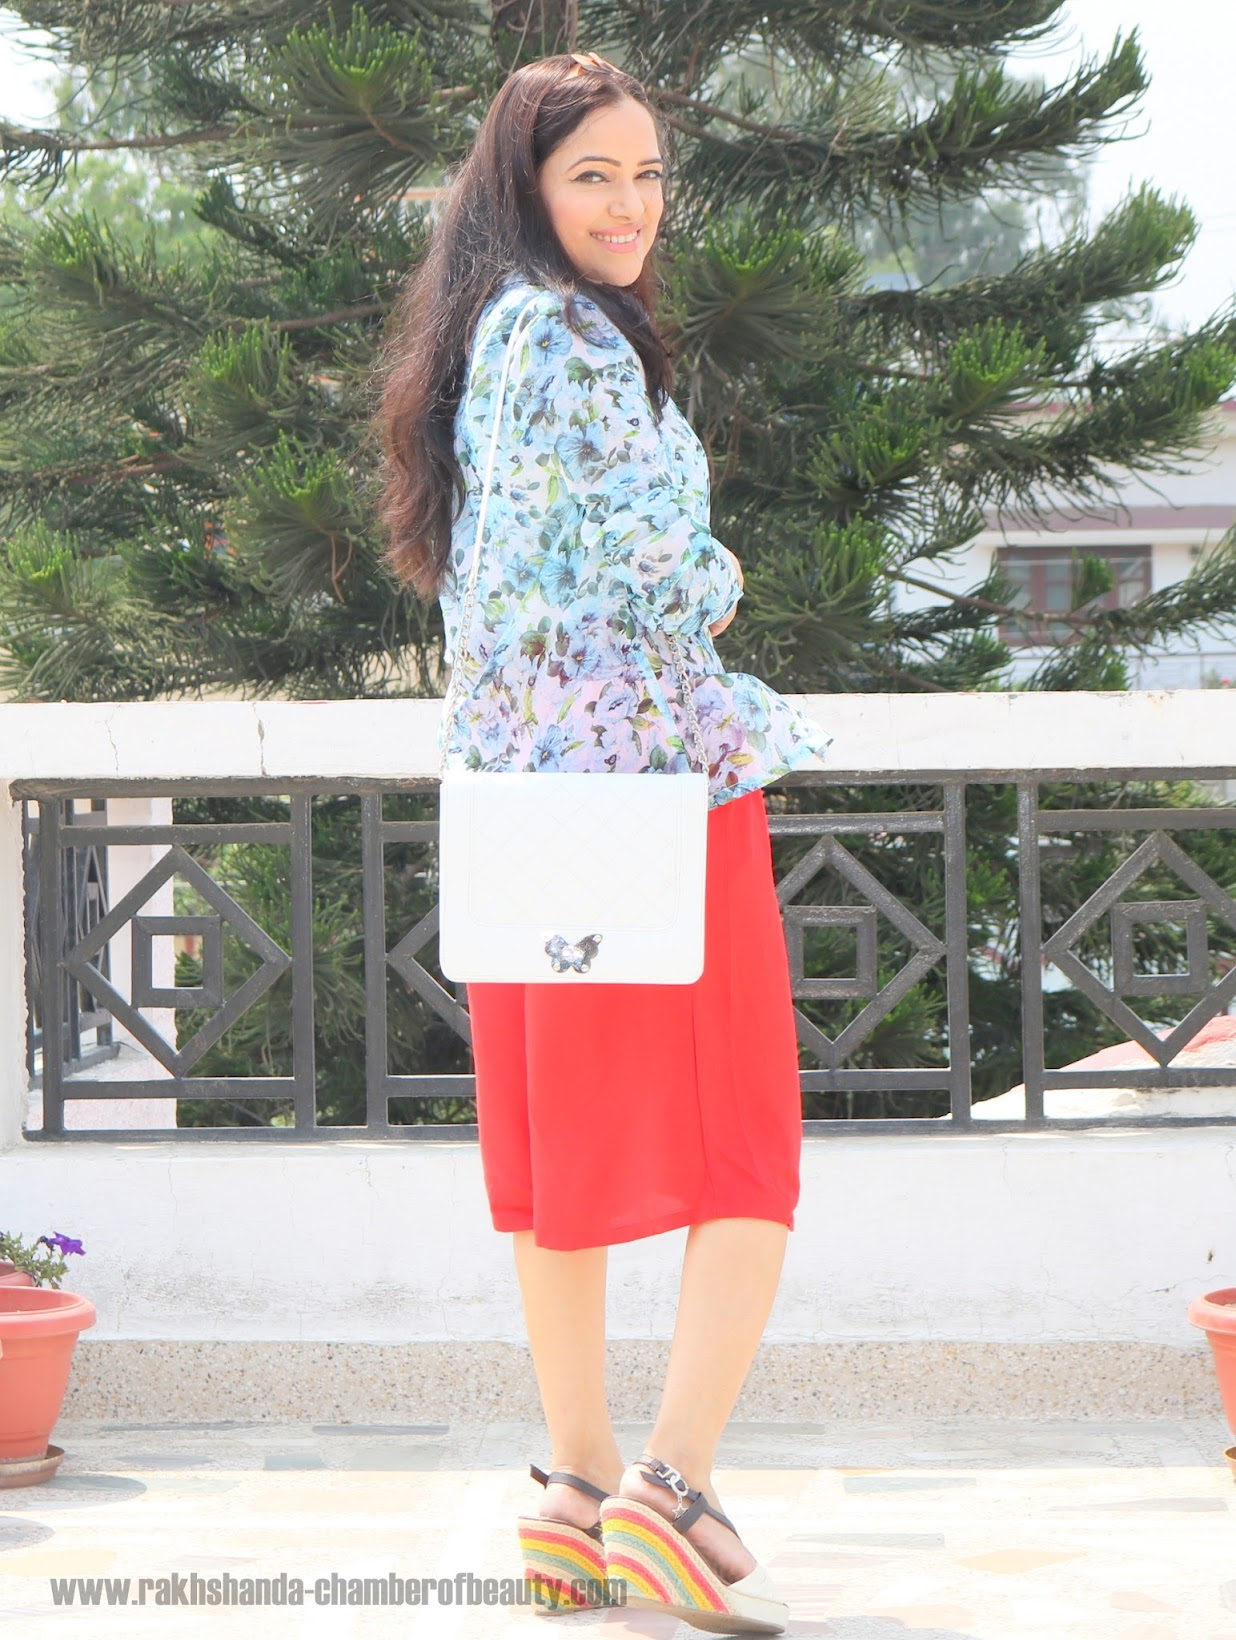 fashion, how to style printed shirts in summer, Indian fashion blogger, Iralzo, OOTD, outfit of the day, printed shirt, summer fashion,